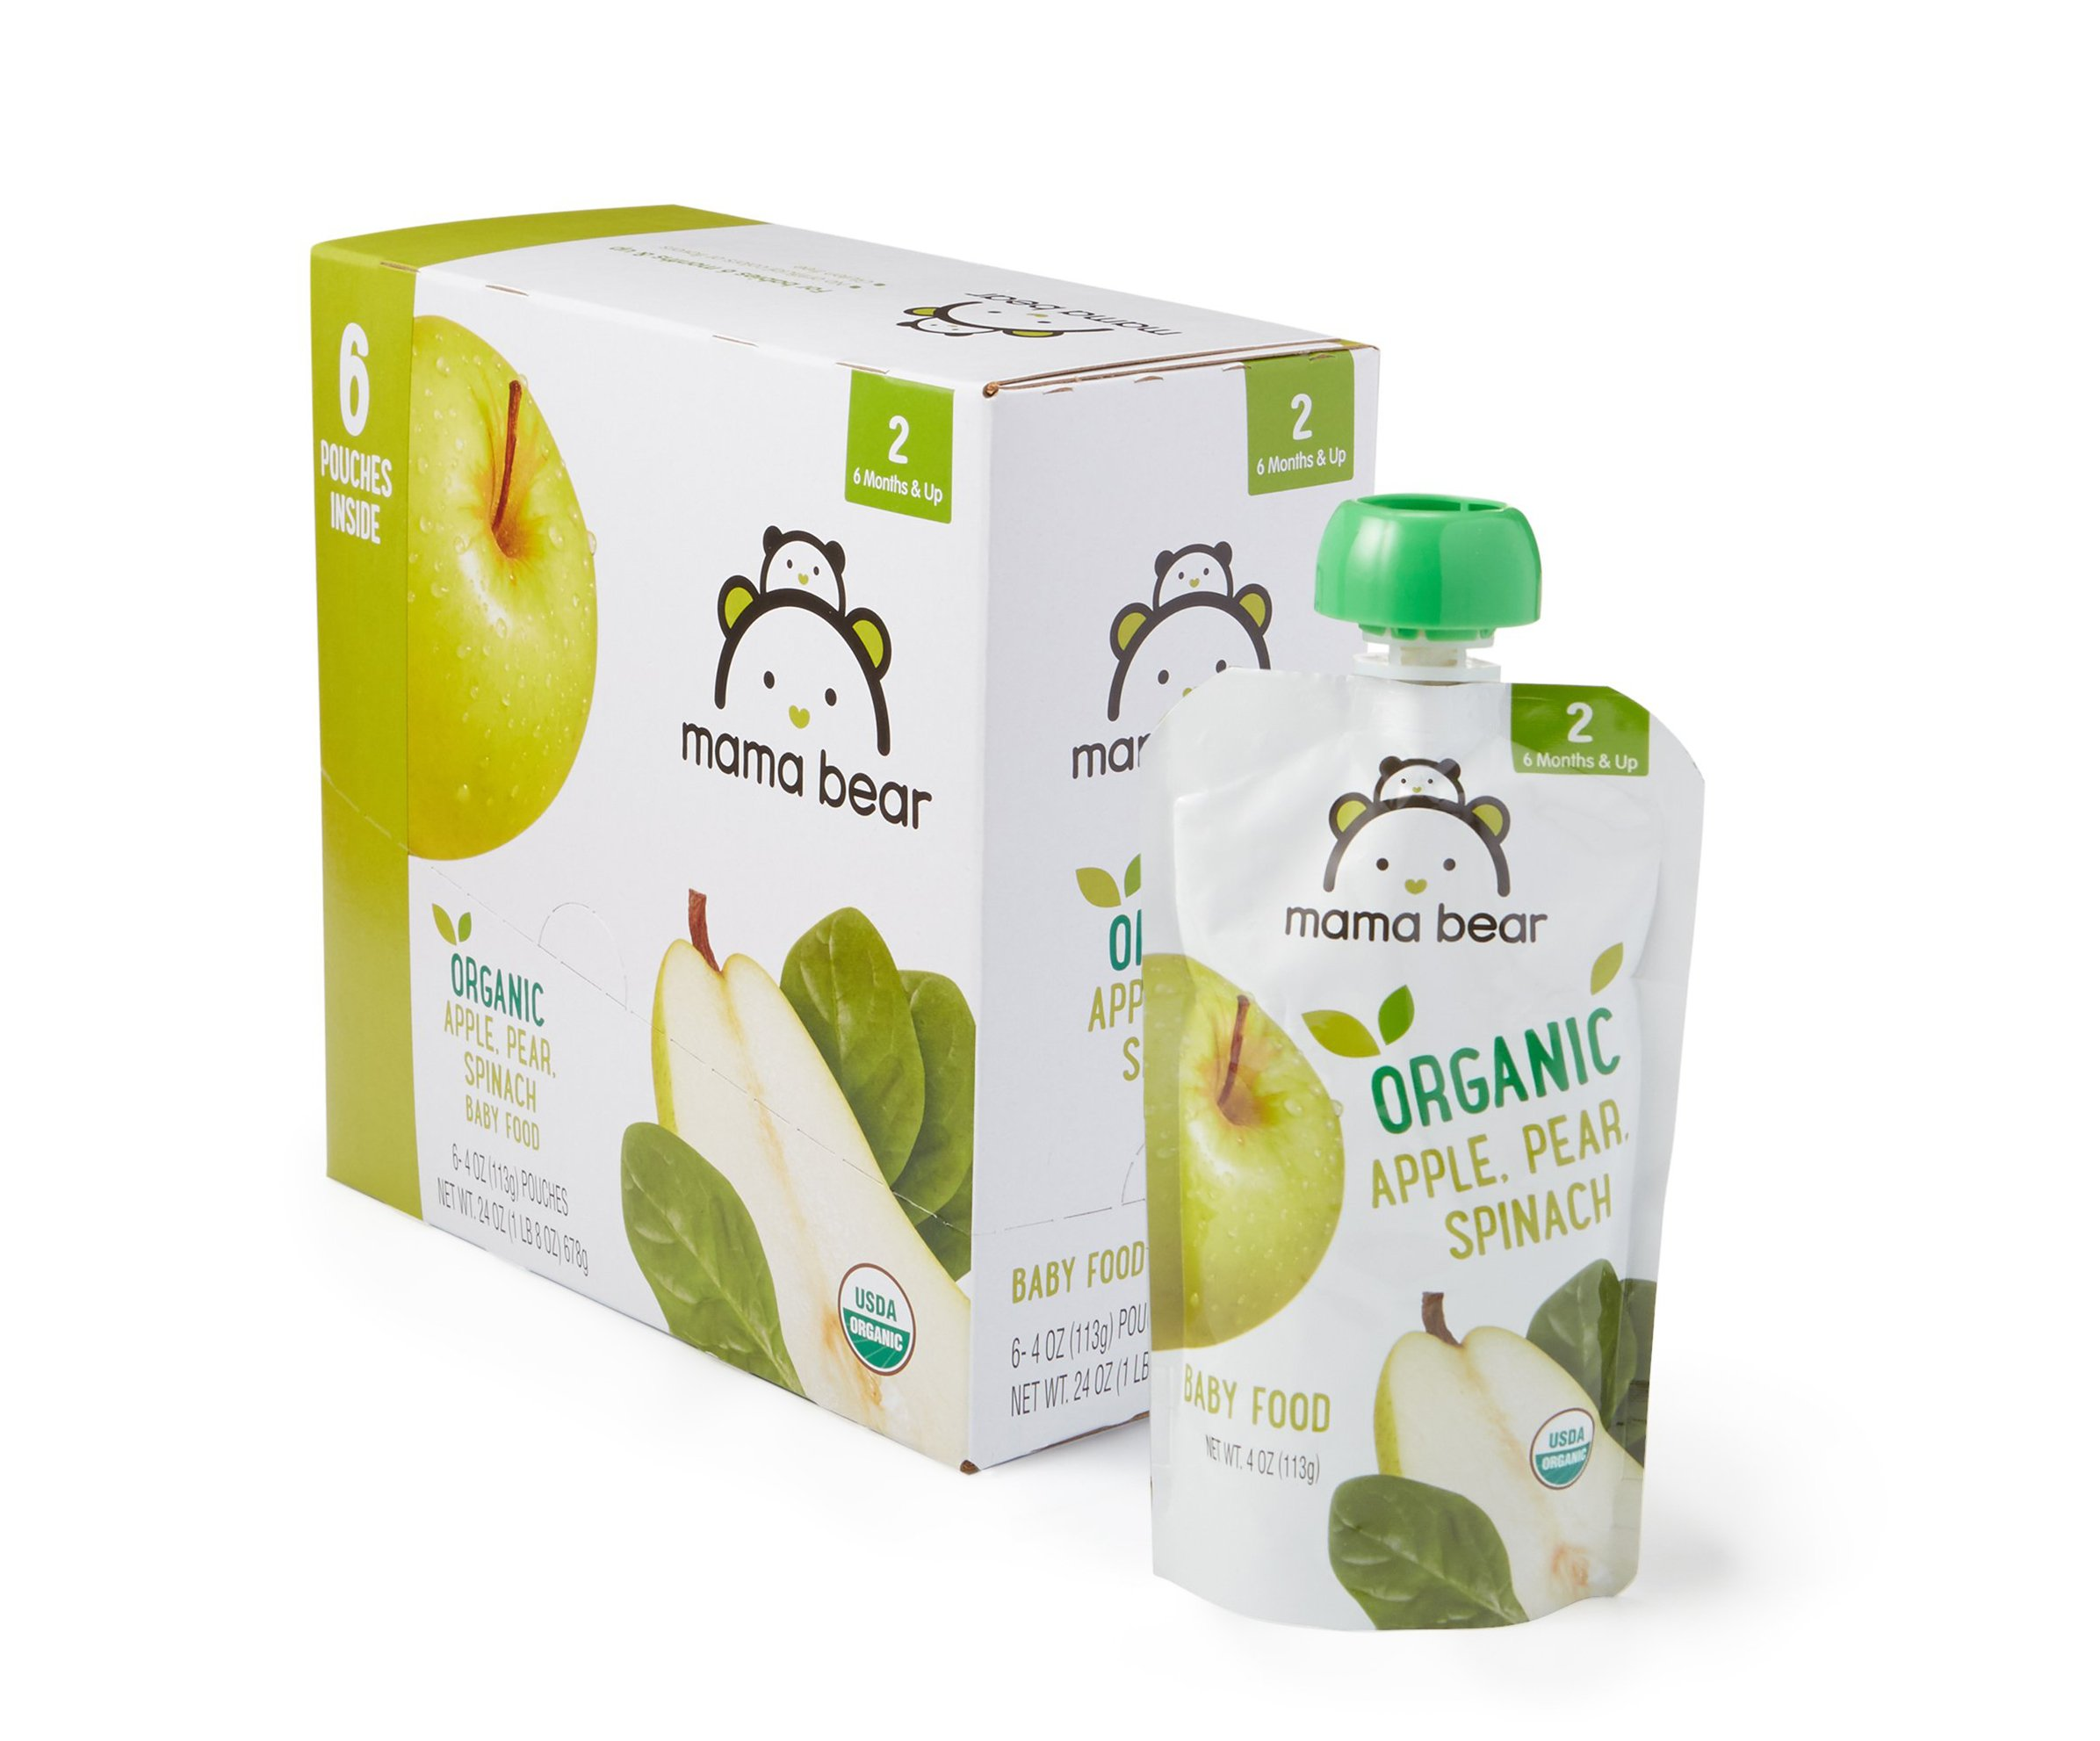 Amazon Brand - Mama Bear Organic Baby Food, Stage 2, Apple Pear Spinach, 4 Ounce Pouch (Pack of 12) by Mama Bear